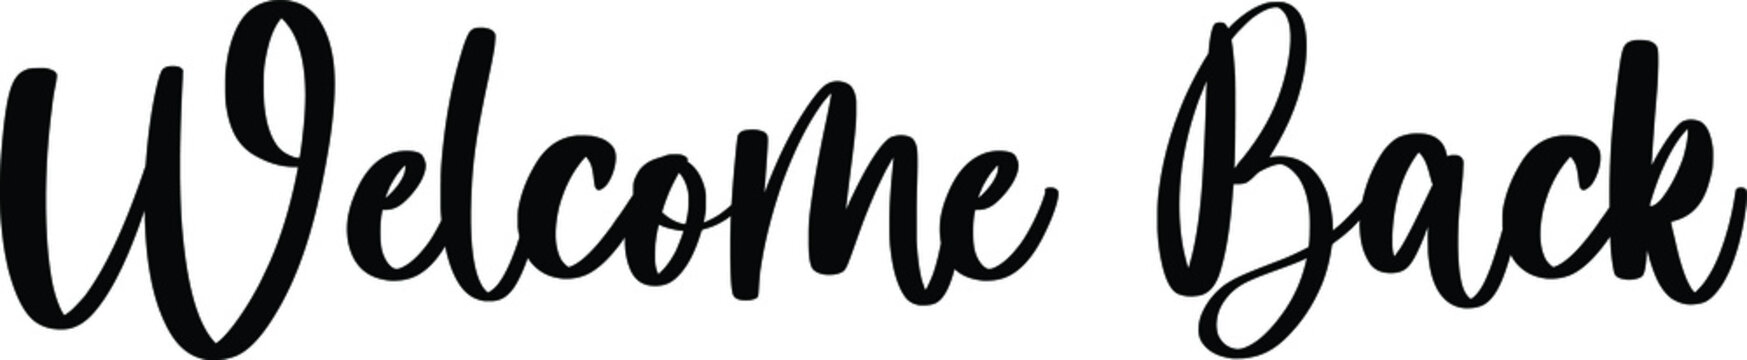 Welcome Back Typography/Calligraphy  Black Color Text On White Background